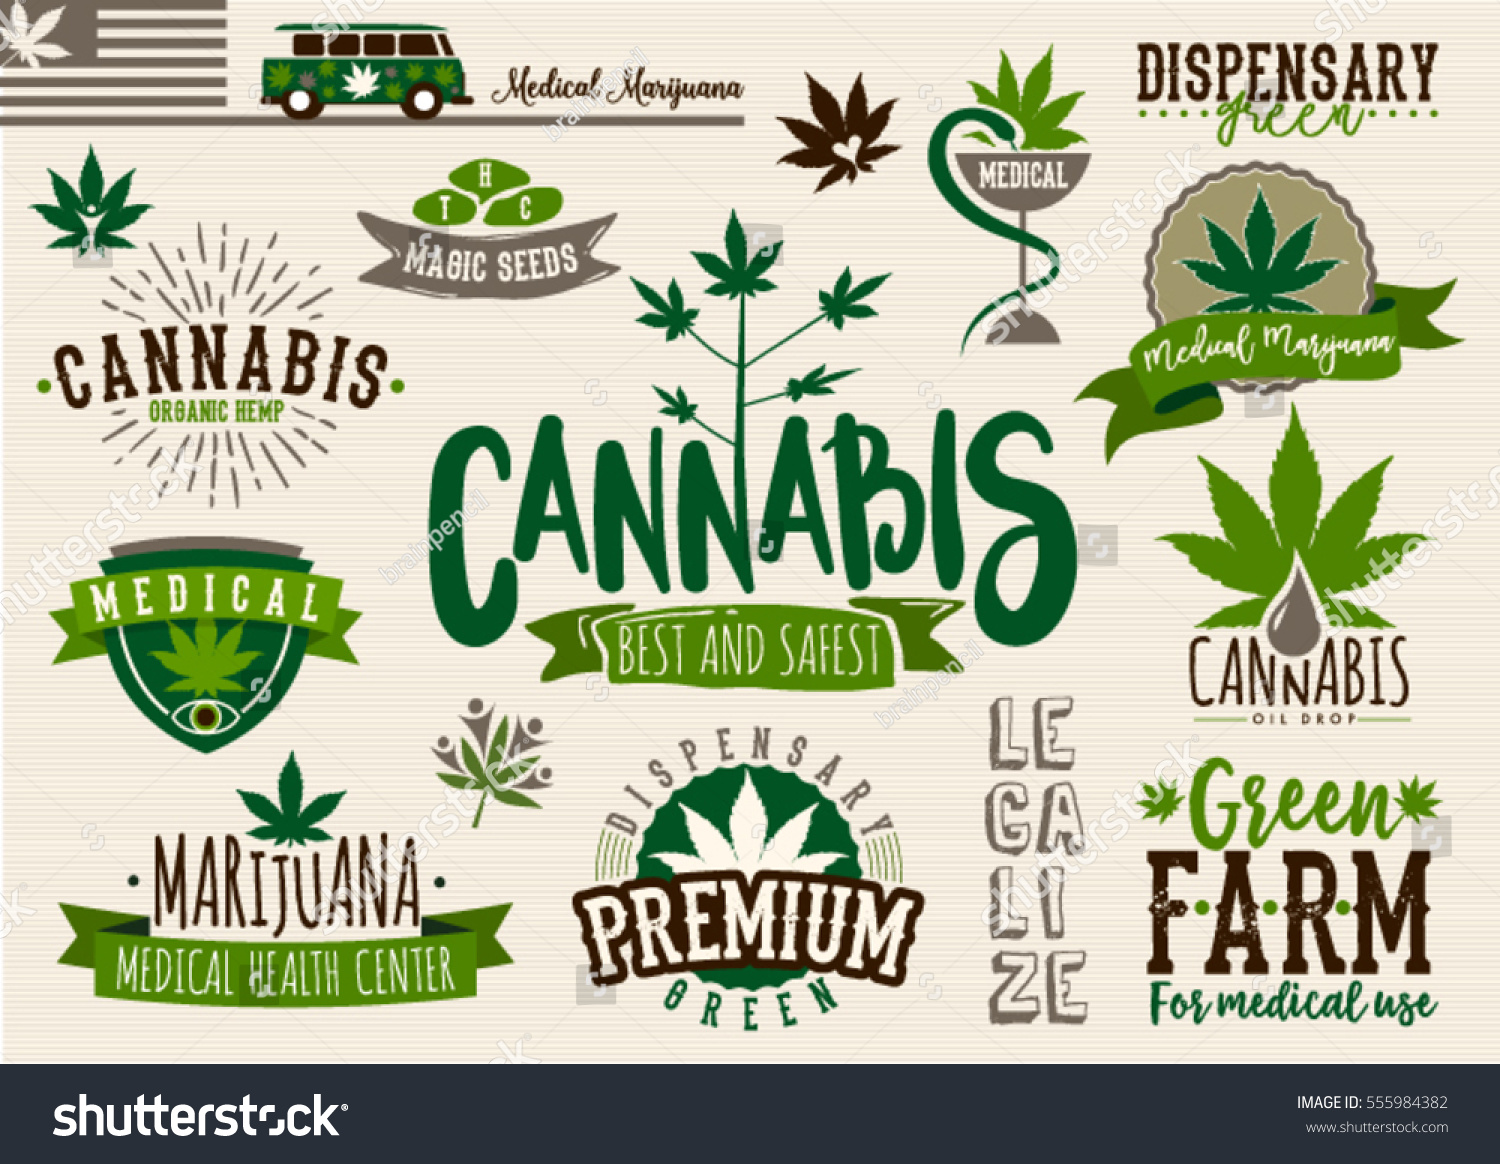 Medical Marijuana Product Label Logo Graphic Vector – Product Label Template